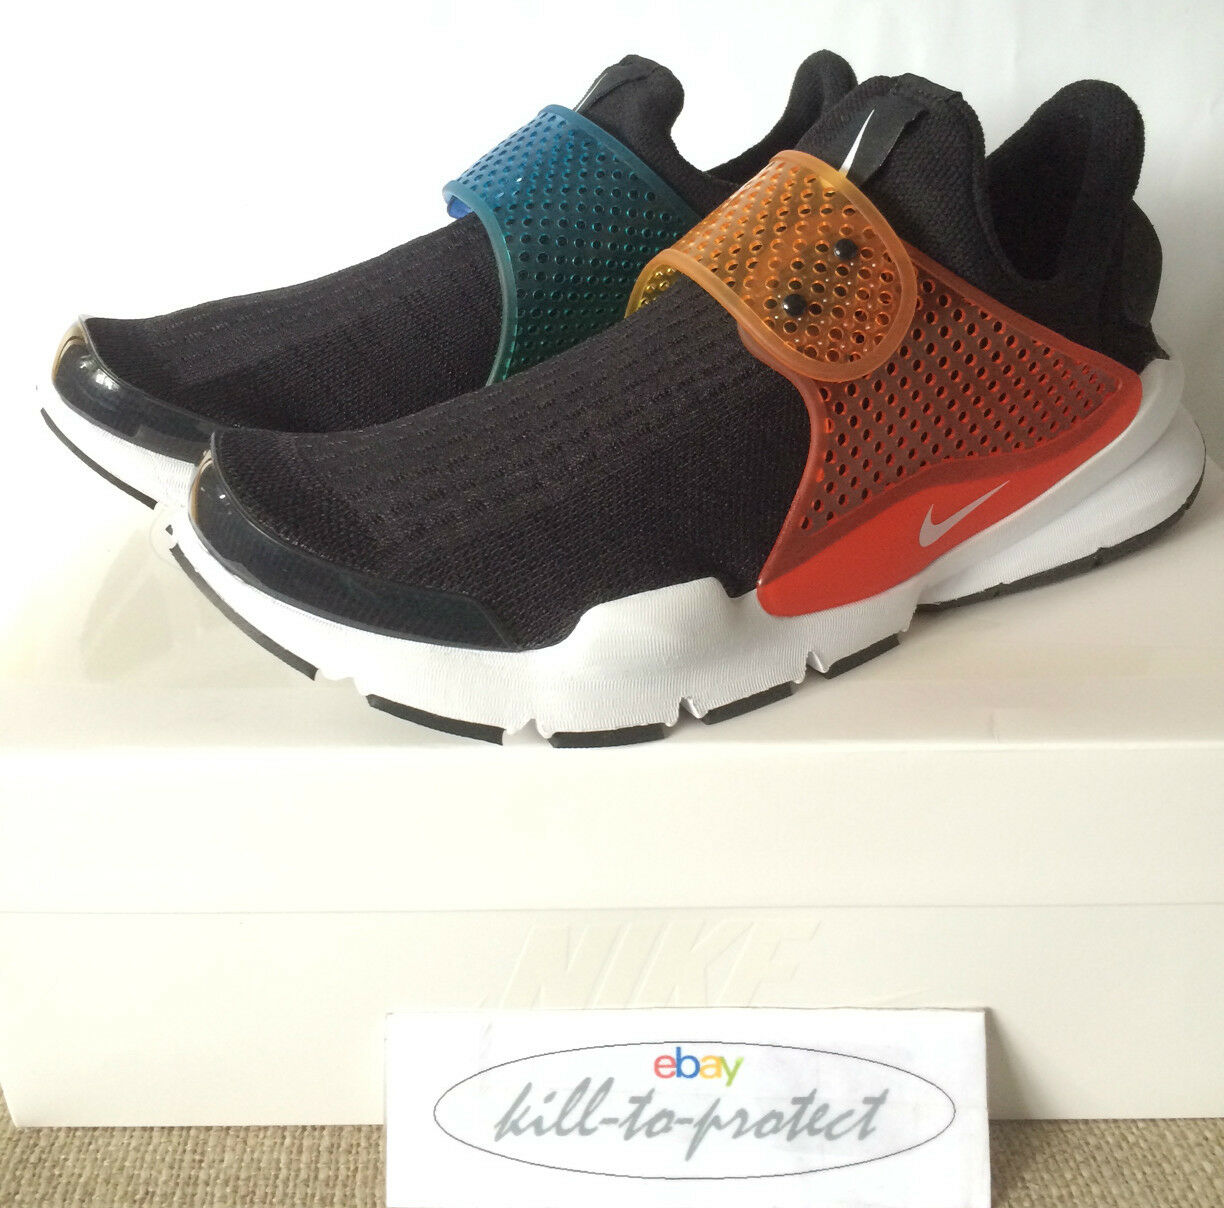 NIKE SOCK DART BE TRUE 11 SzUS 8 9 10 11 TRUE SP RAINBOW 686058-019 Fragment 2015 7c3794